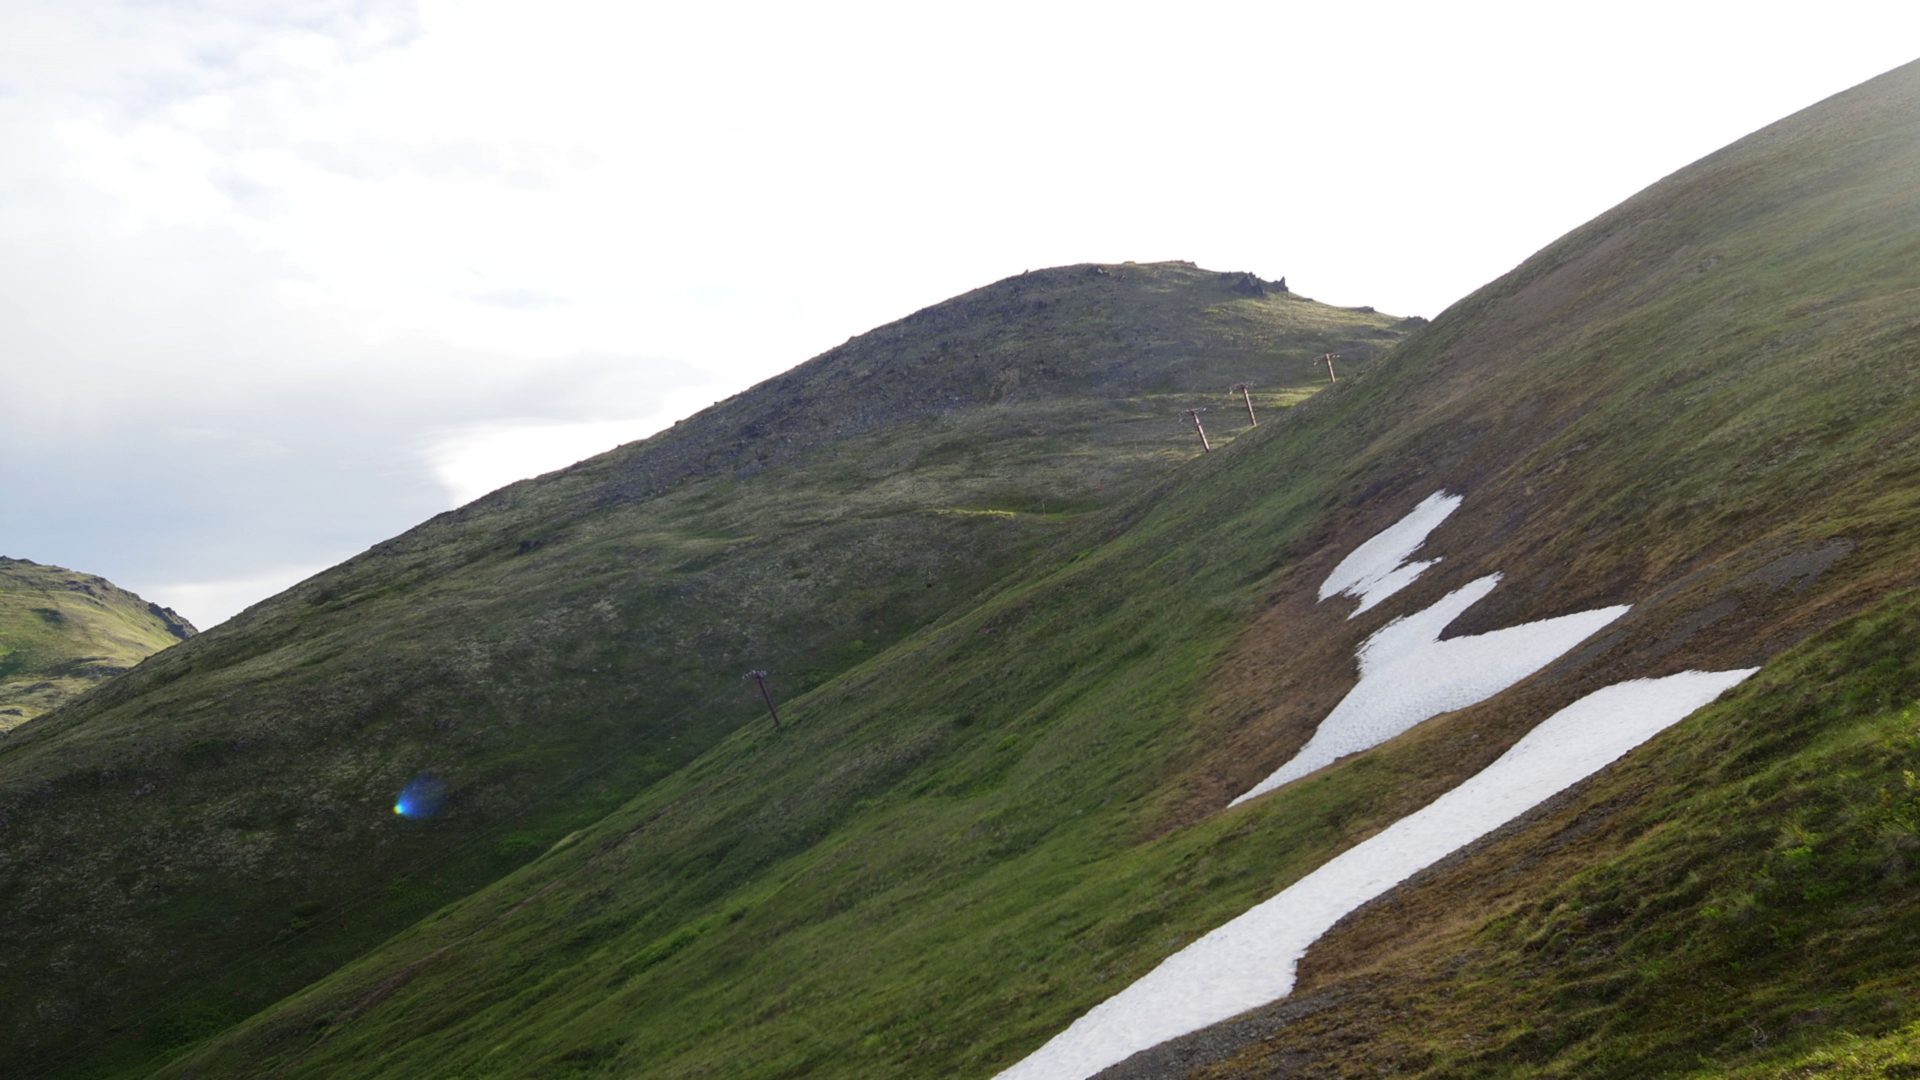 View of Rendezvous Peak in the background